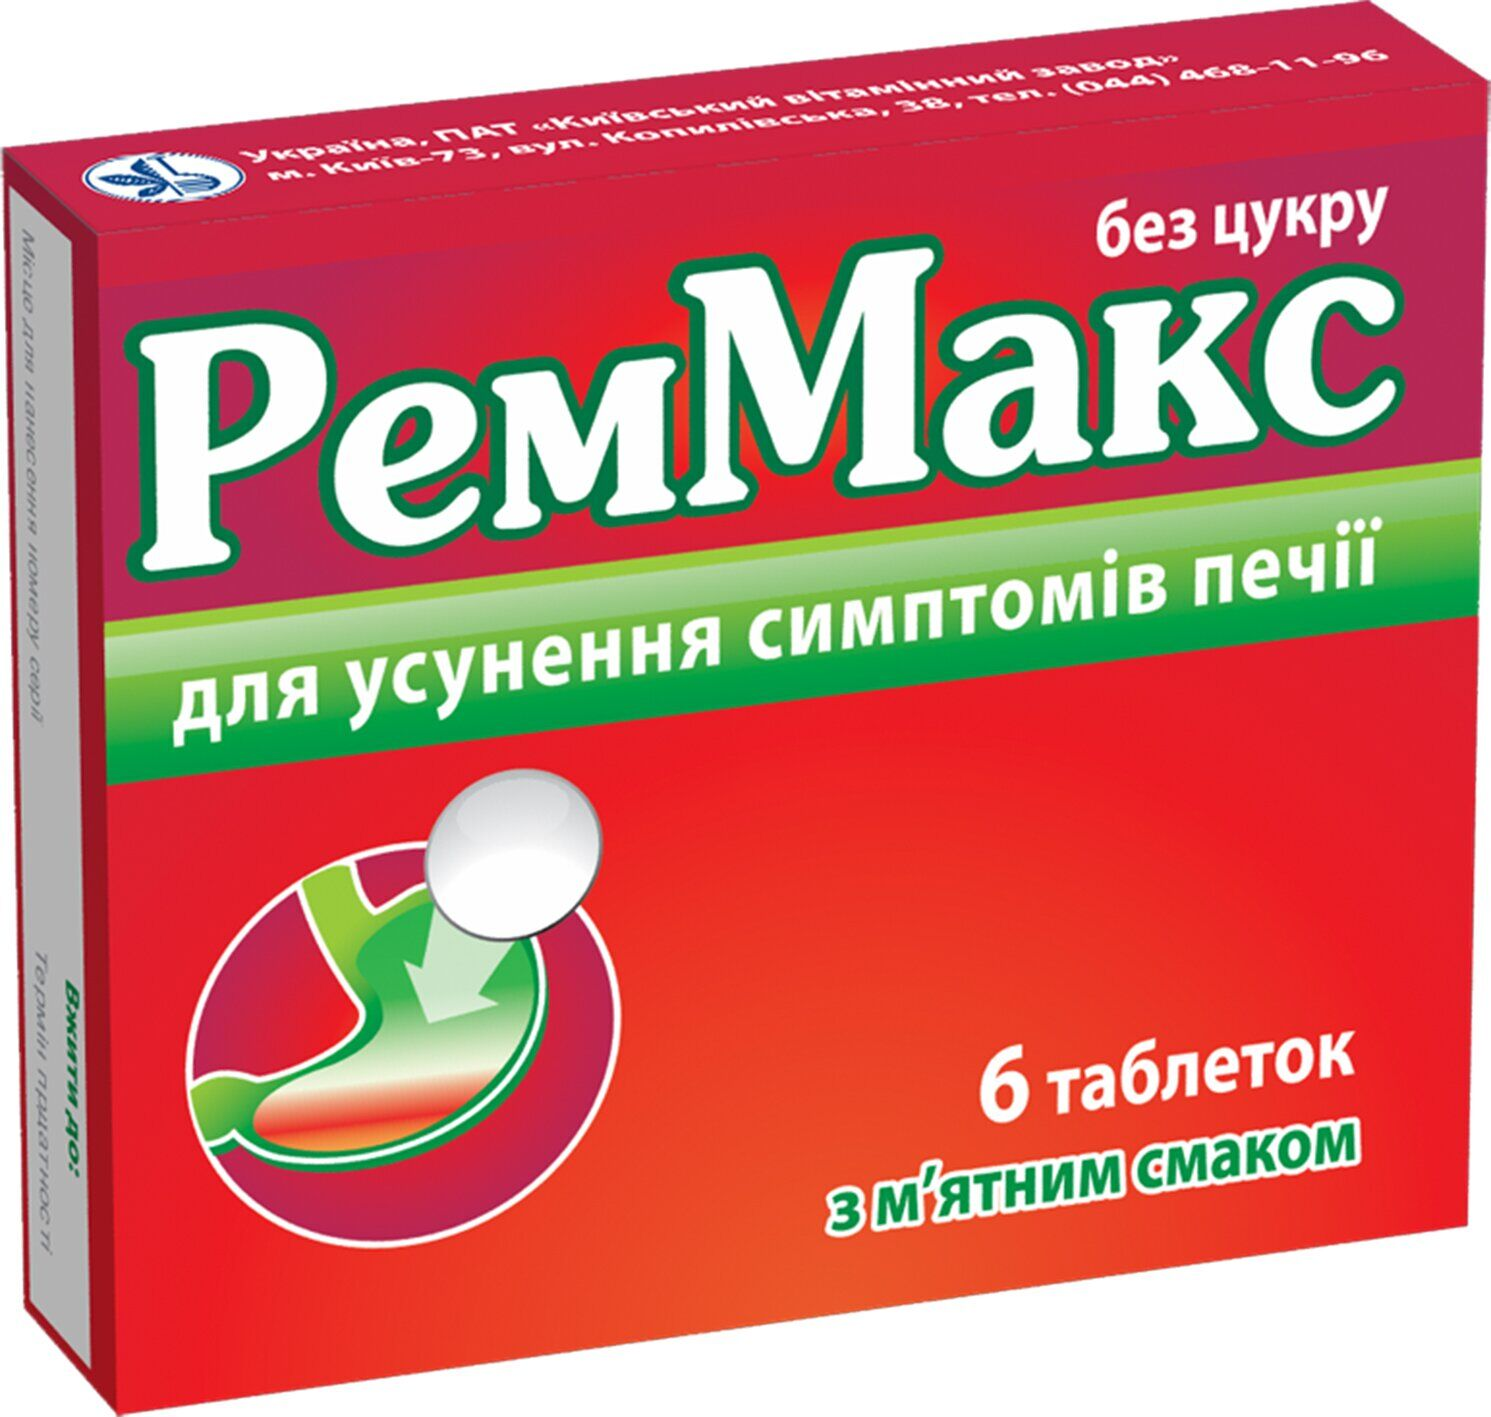 Remmax (calcium carbonate, magnesium carbonate) tablets N6